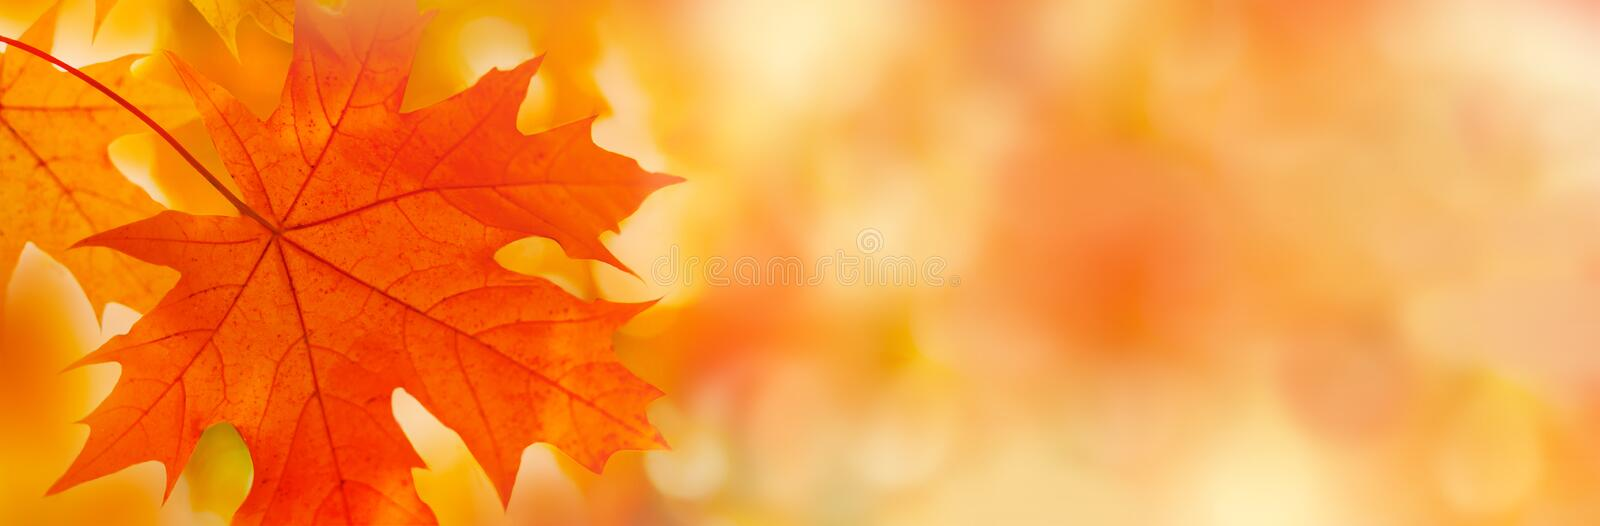 Colorful maple leaves close-up on the blurry background. Bright autumn foliage background. Fall panoramic backdrop.  Copy space for your text royalty free stock photos